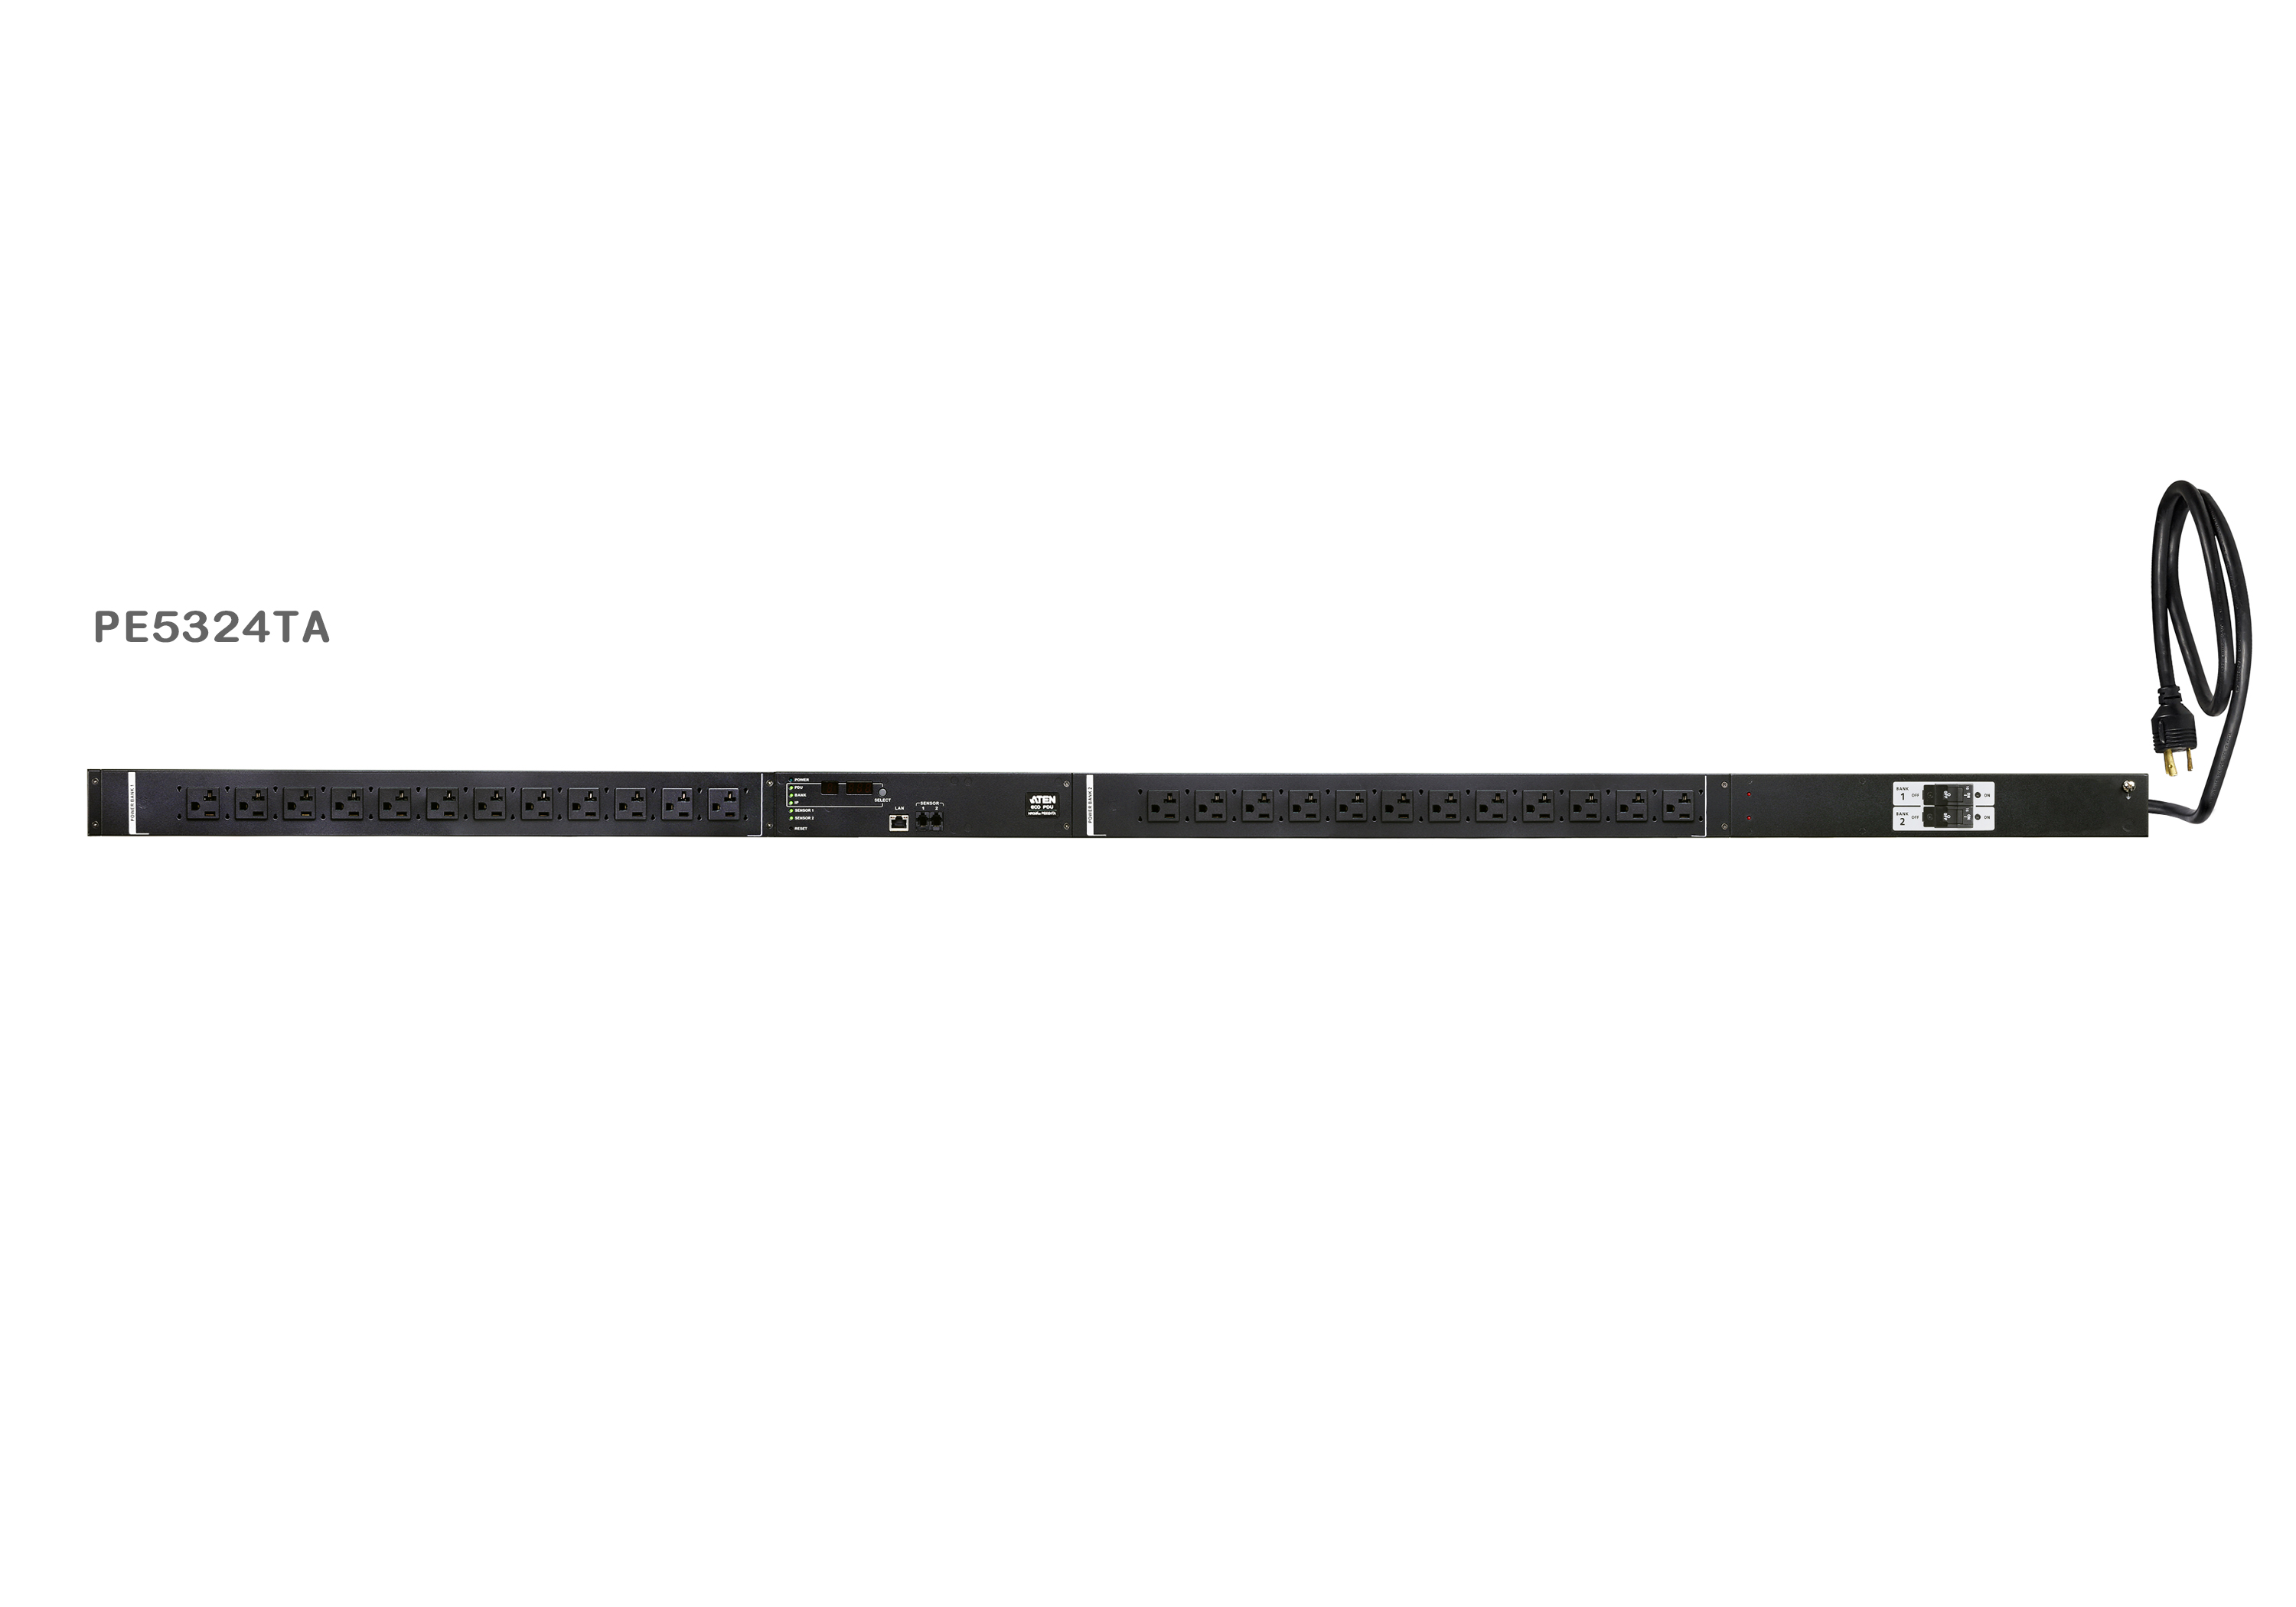 30A 24-Outlet Metered Thin Form Factor eco PDU-1